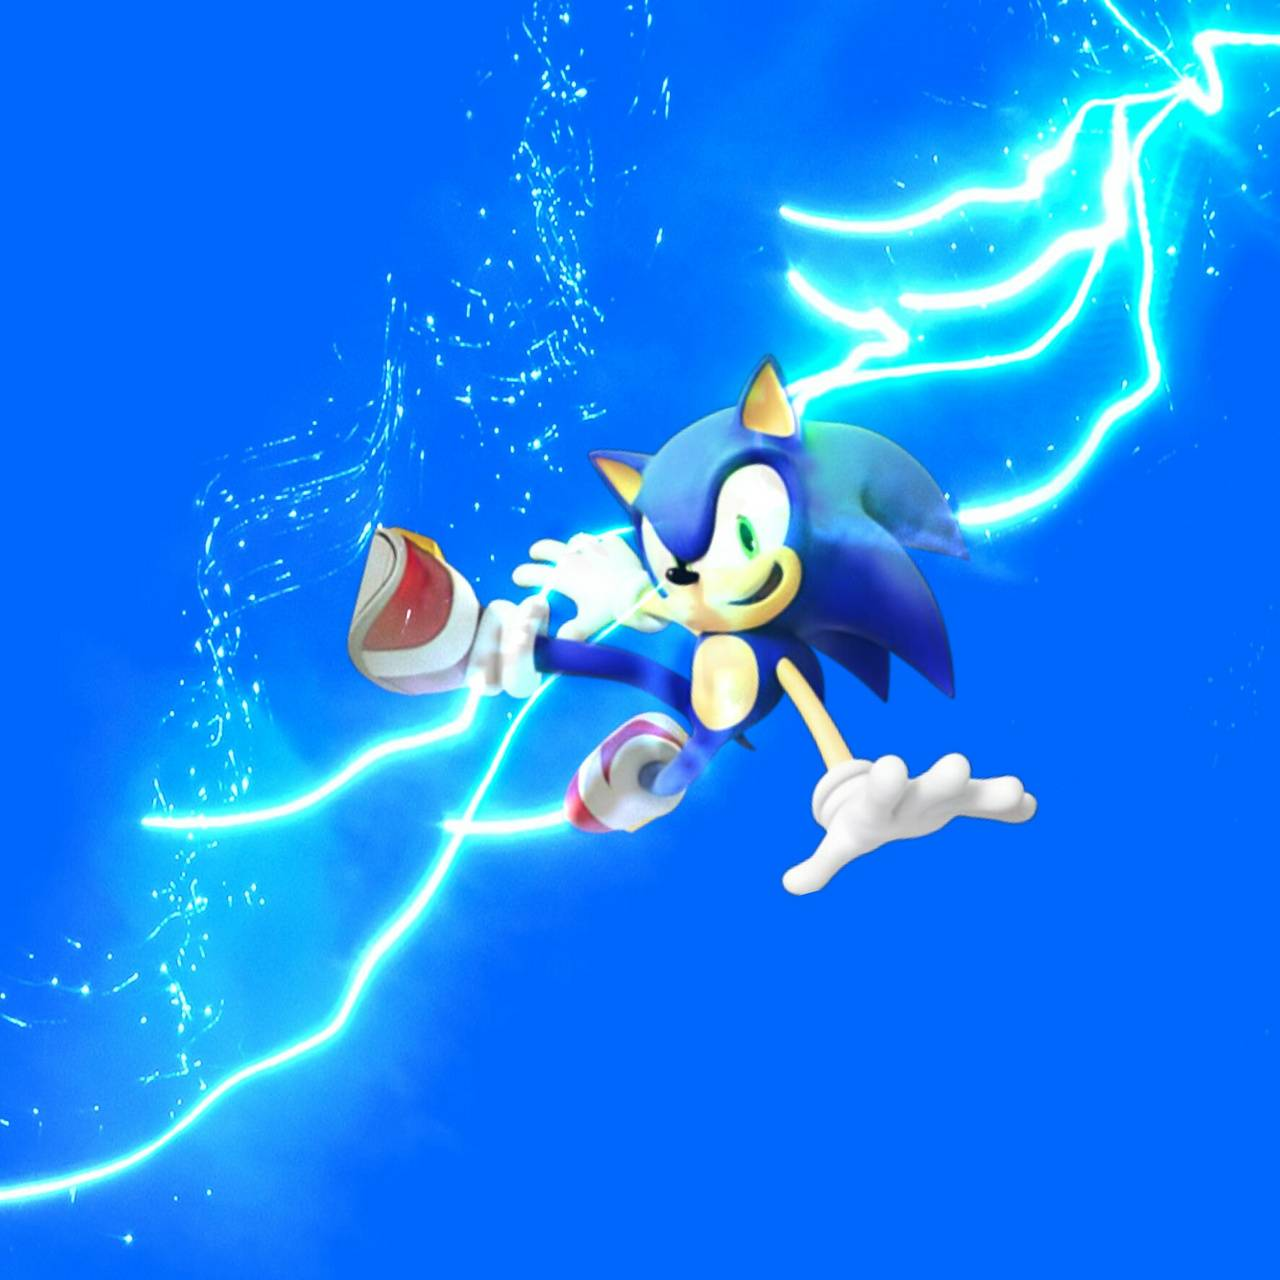 Sonic Ray Wallpaper By TKINGWALLPAPERS